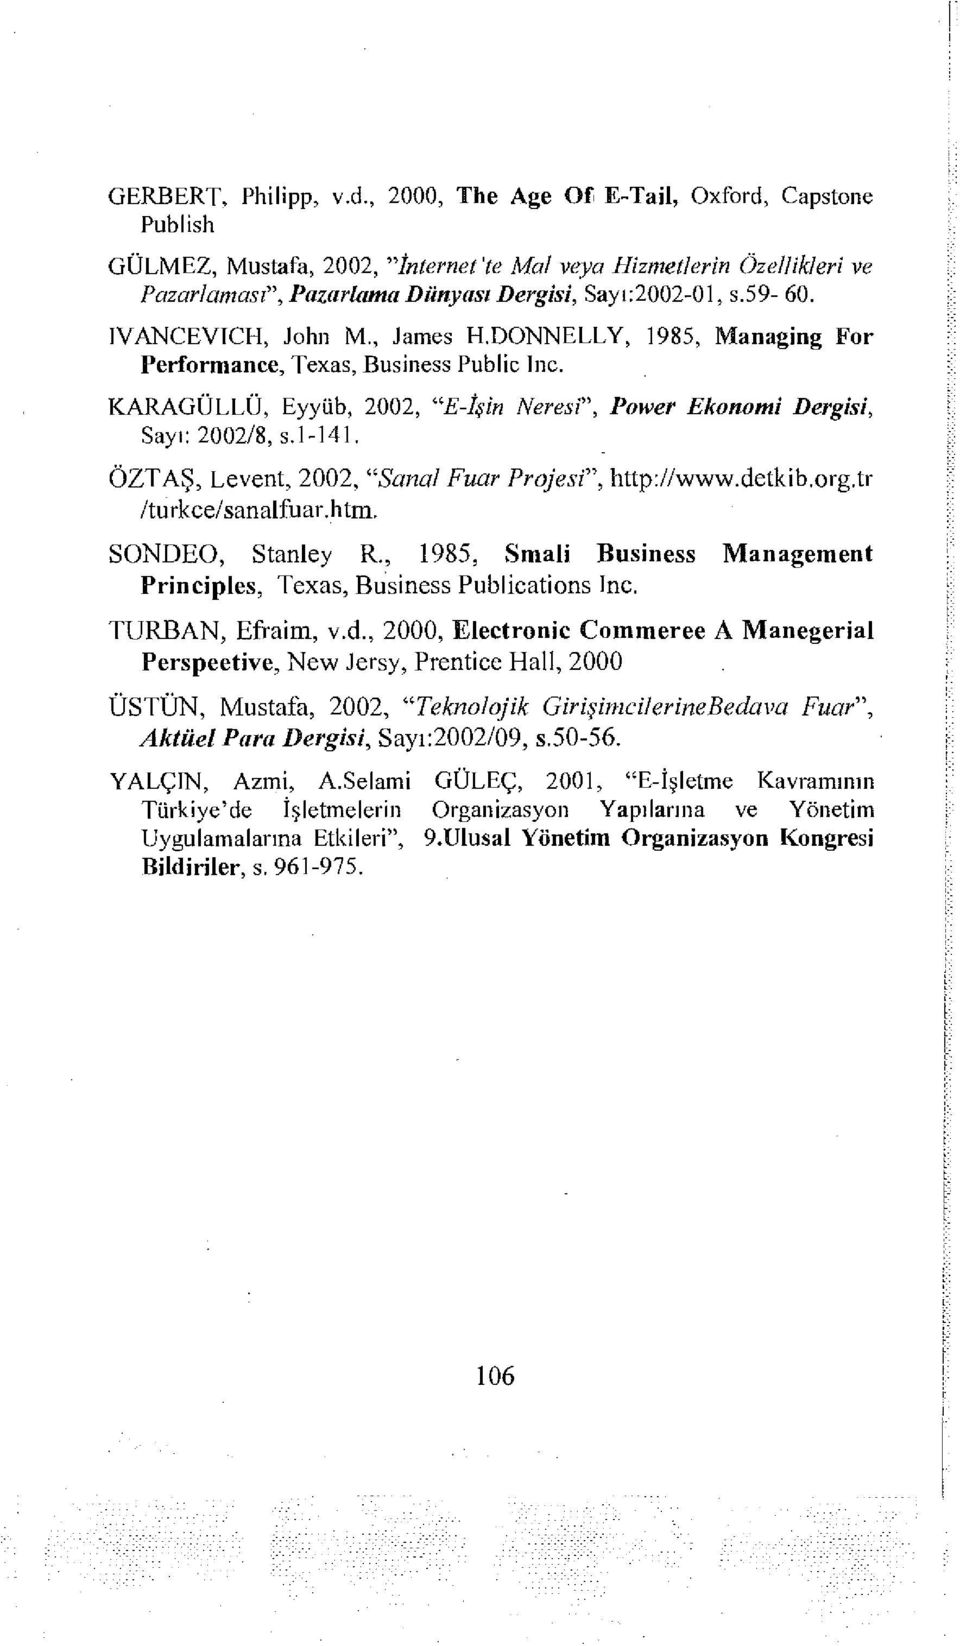 "IVANCEVTCH, John M., James H.DONNELLY, 1985, Managing For Performance, Texas, Business Public Inc. KARAGÜLLÜ, Eyyüb, 2002, ""E-İşin Neresi"", Power Ekonomi Dergisi, Sayı: 2002/8, s.1-141."